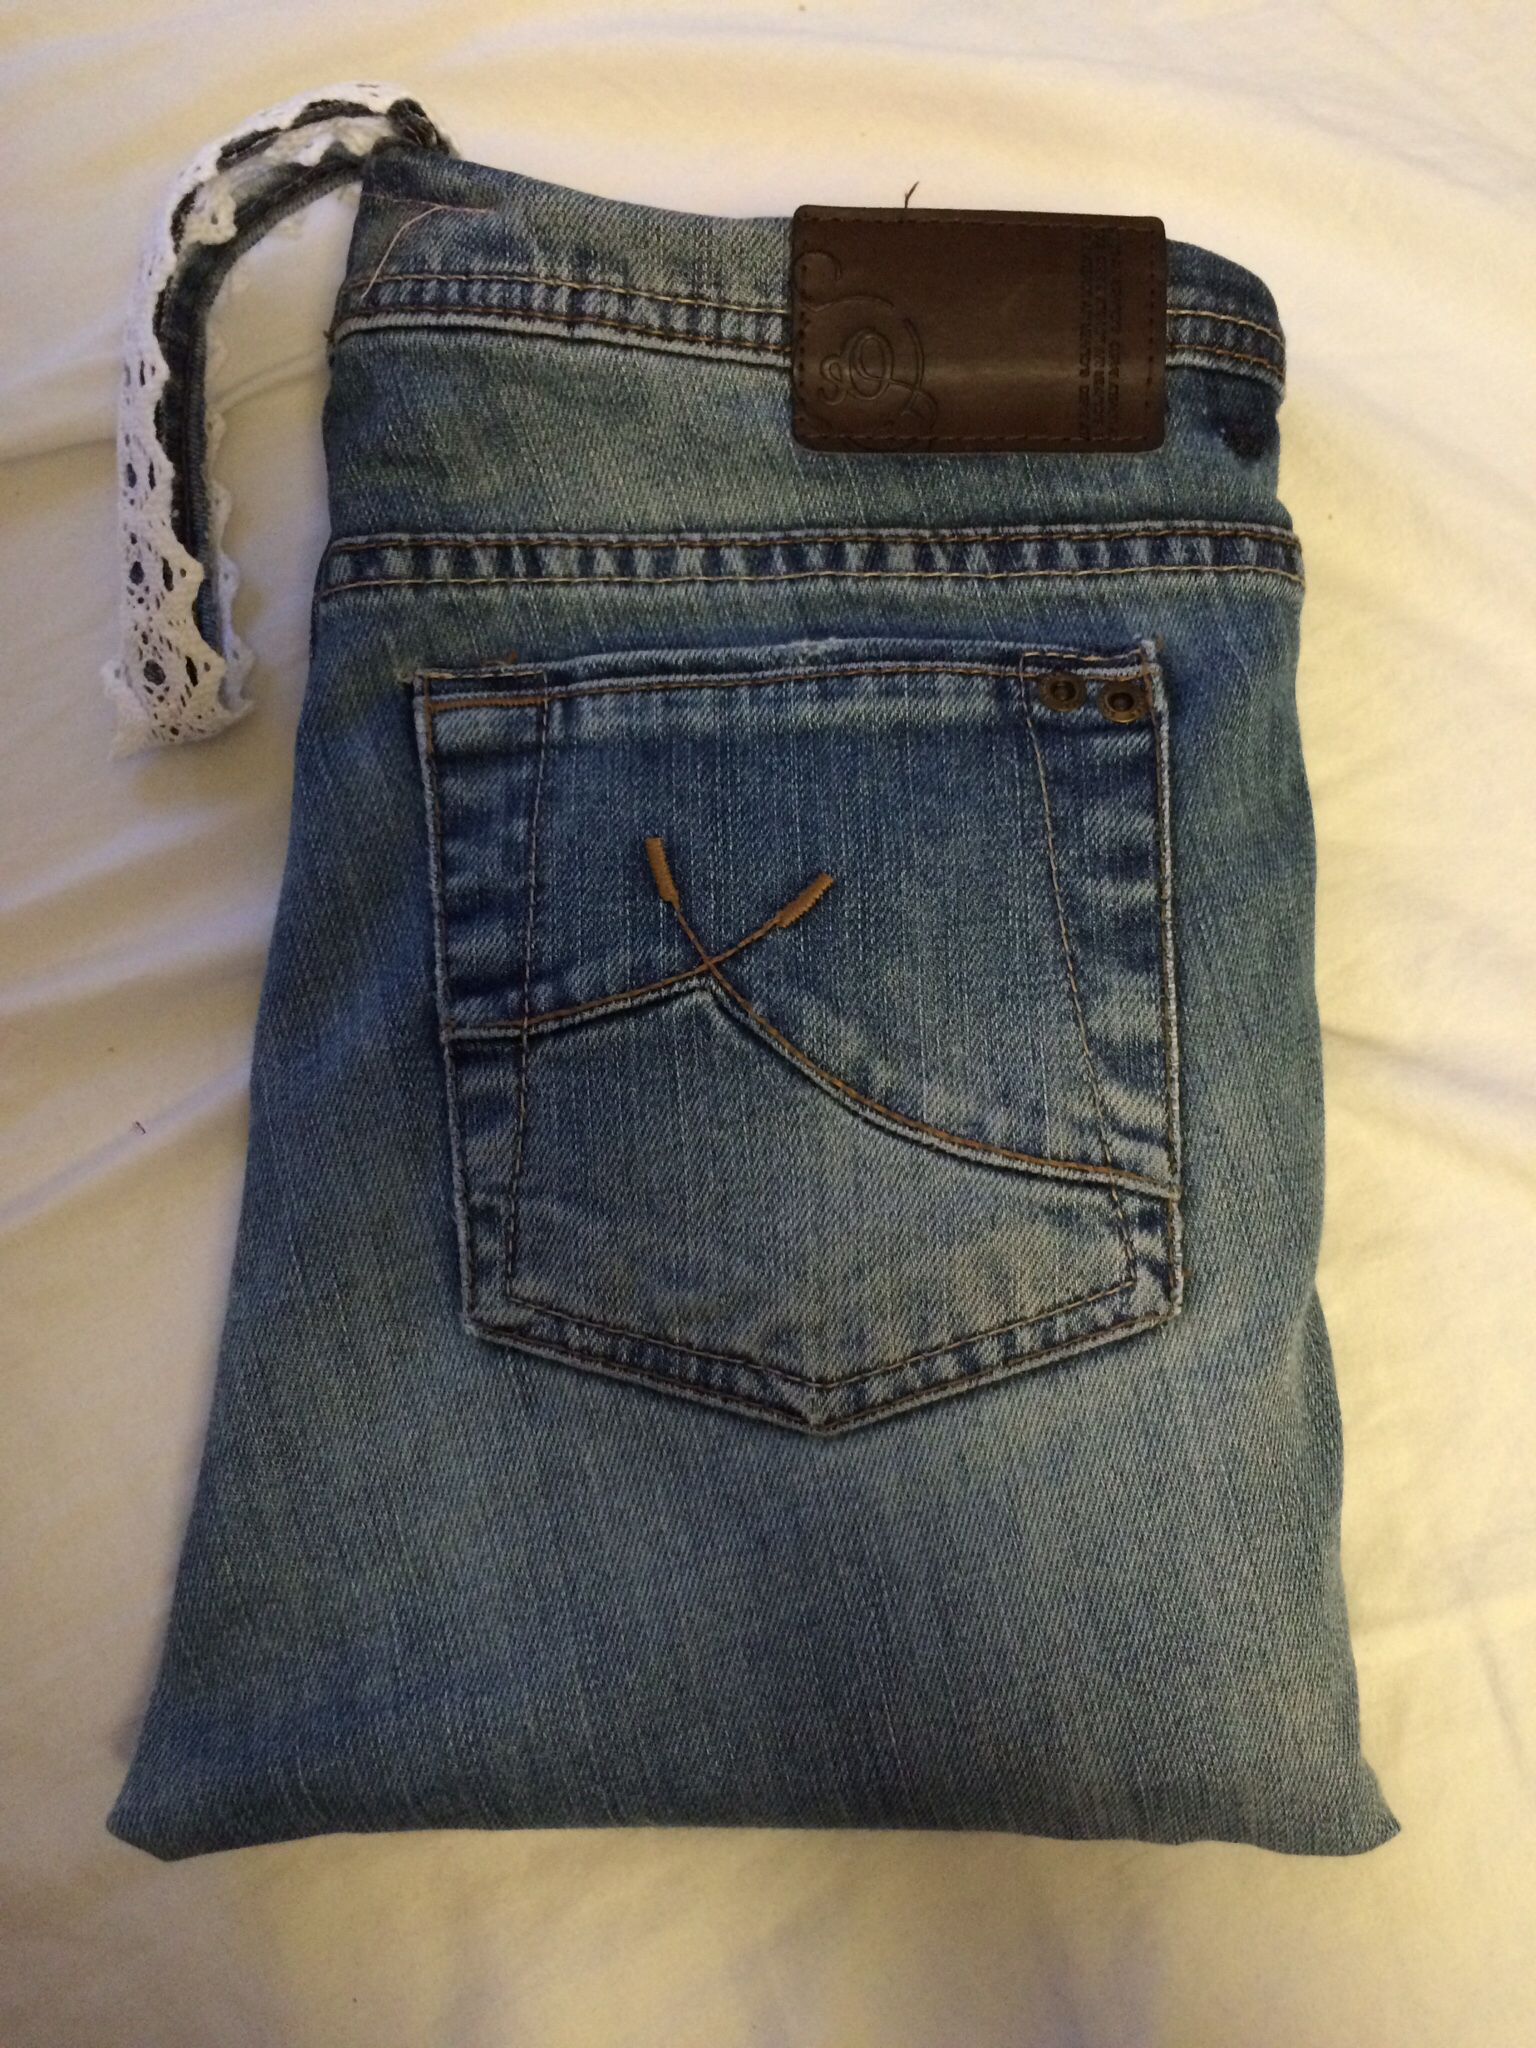 Einzigartig Upcycling Jeans Ideen